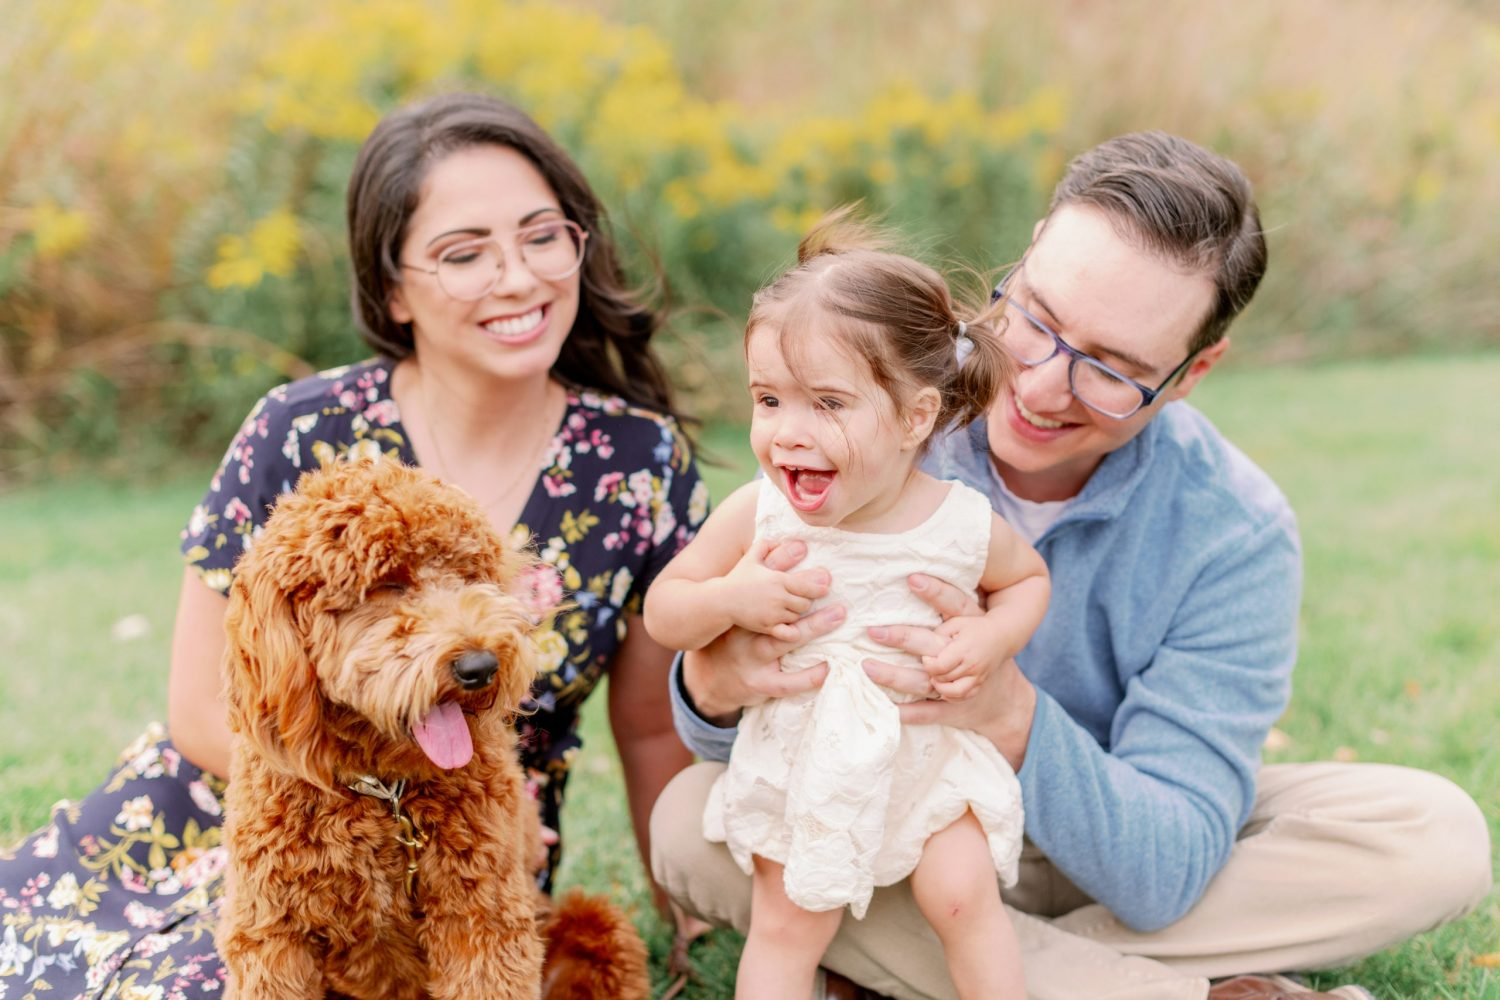 Dog Friendly Photo Locations in Chicago Suburbs - Chicago Family Photographer